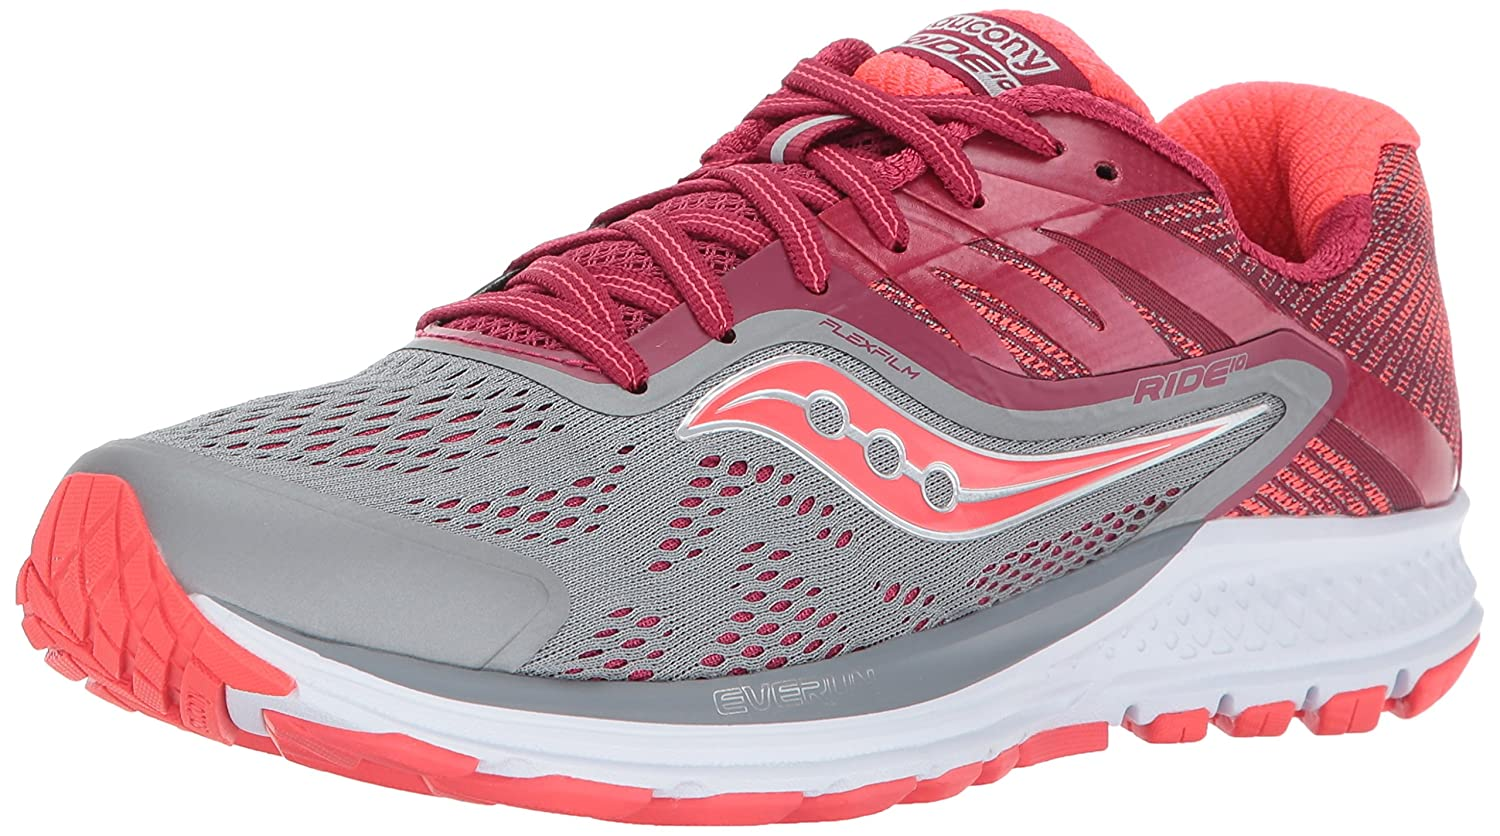 Saucony Women's Ride 10 Running-Shoes B01NCOV5IO 8.5 B(M) US|Grey Berry